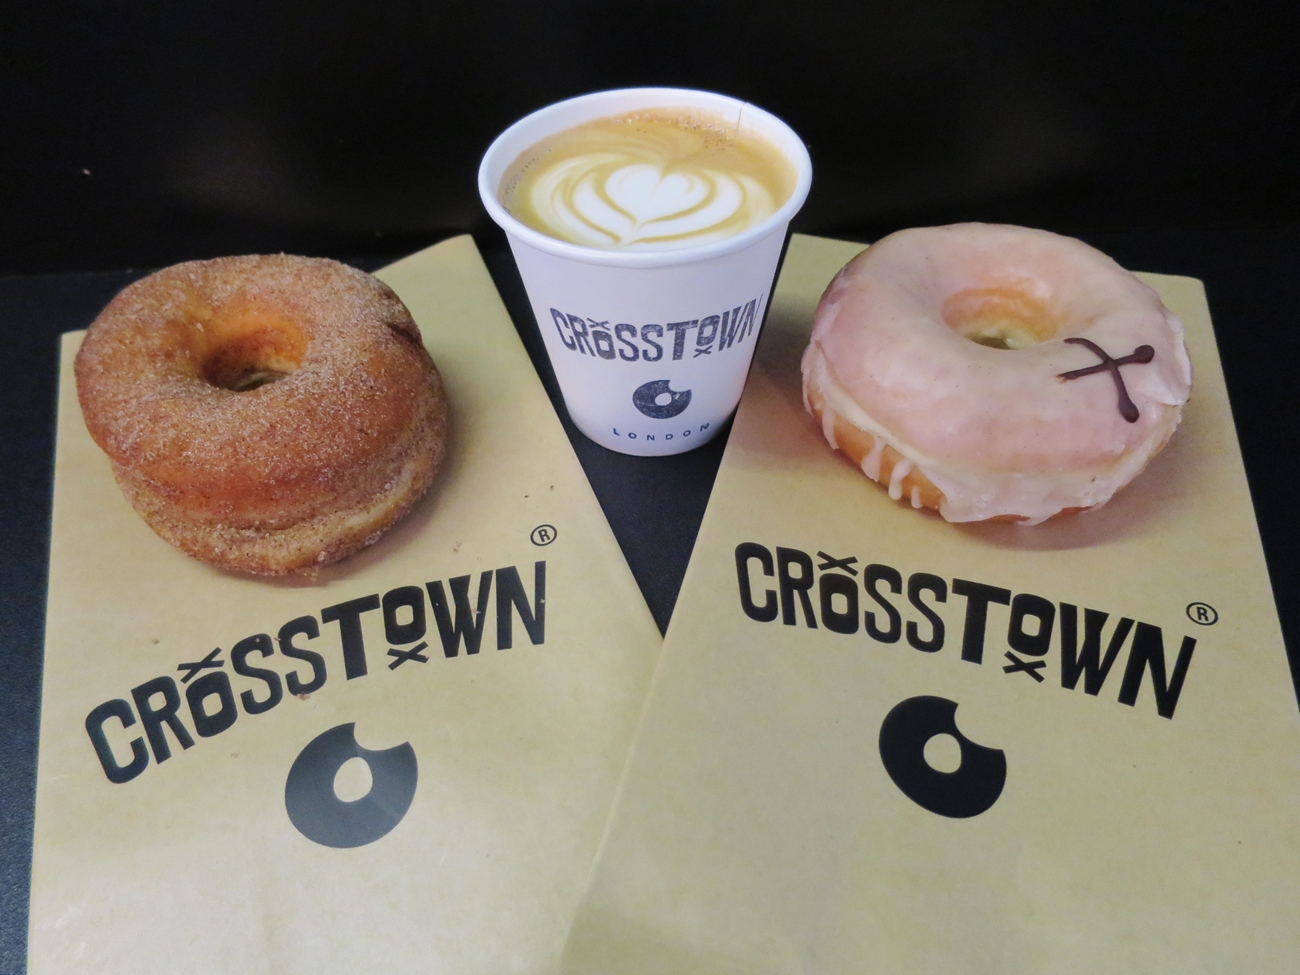 Crosstown Doughnuts in London, England